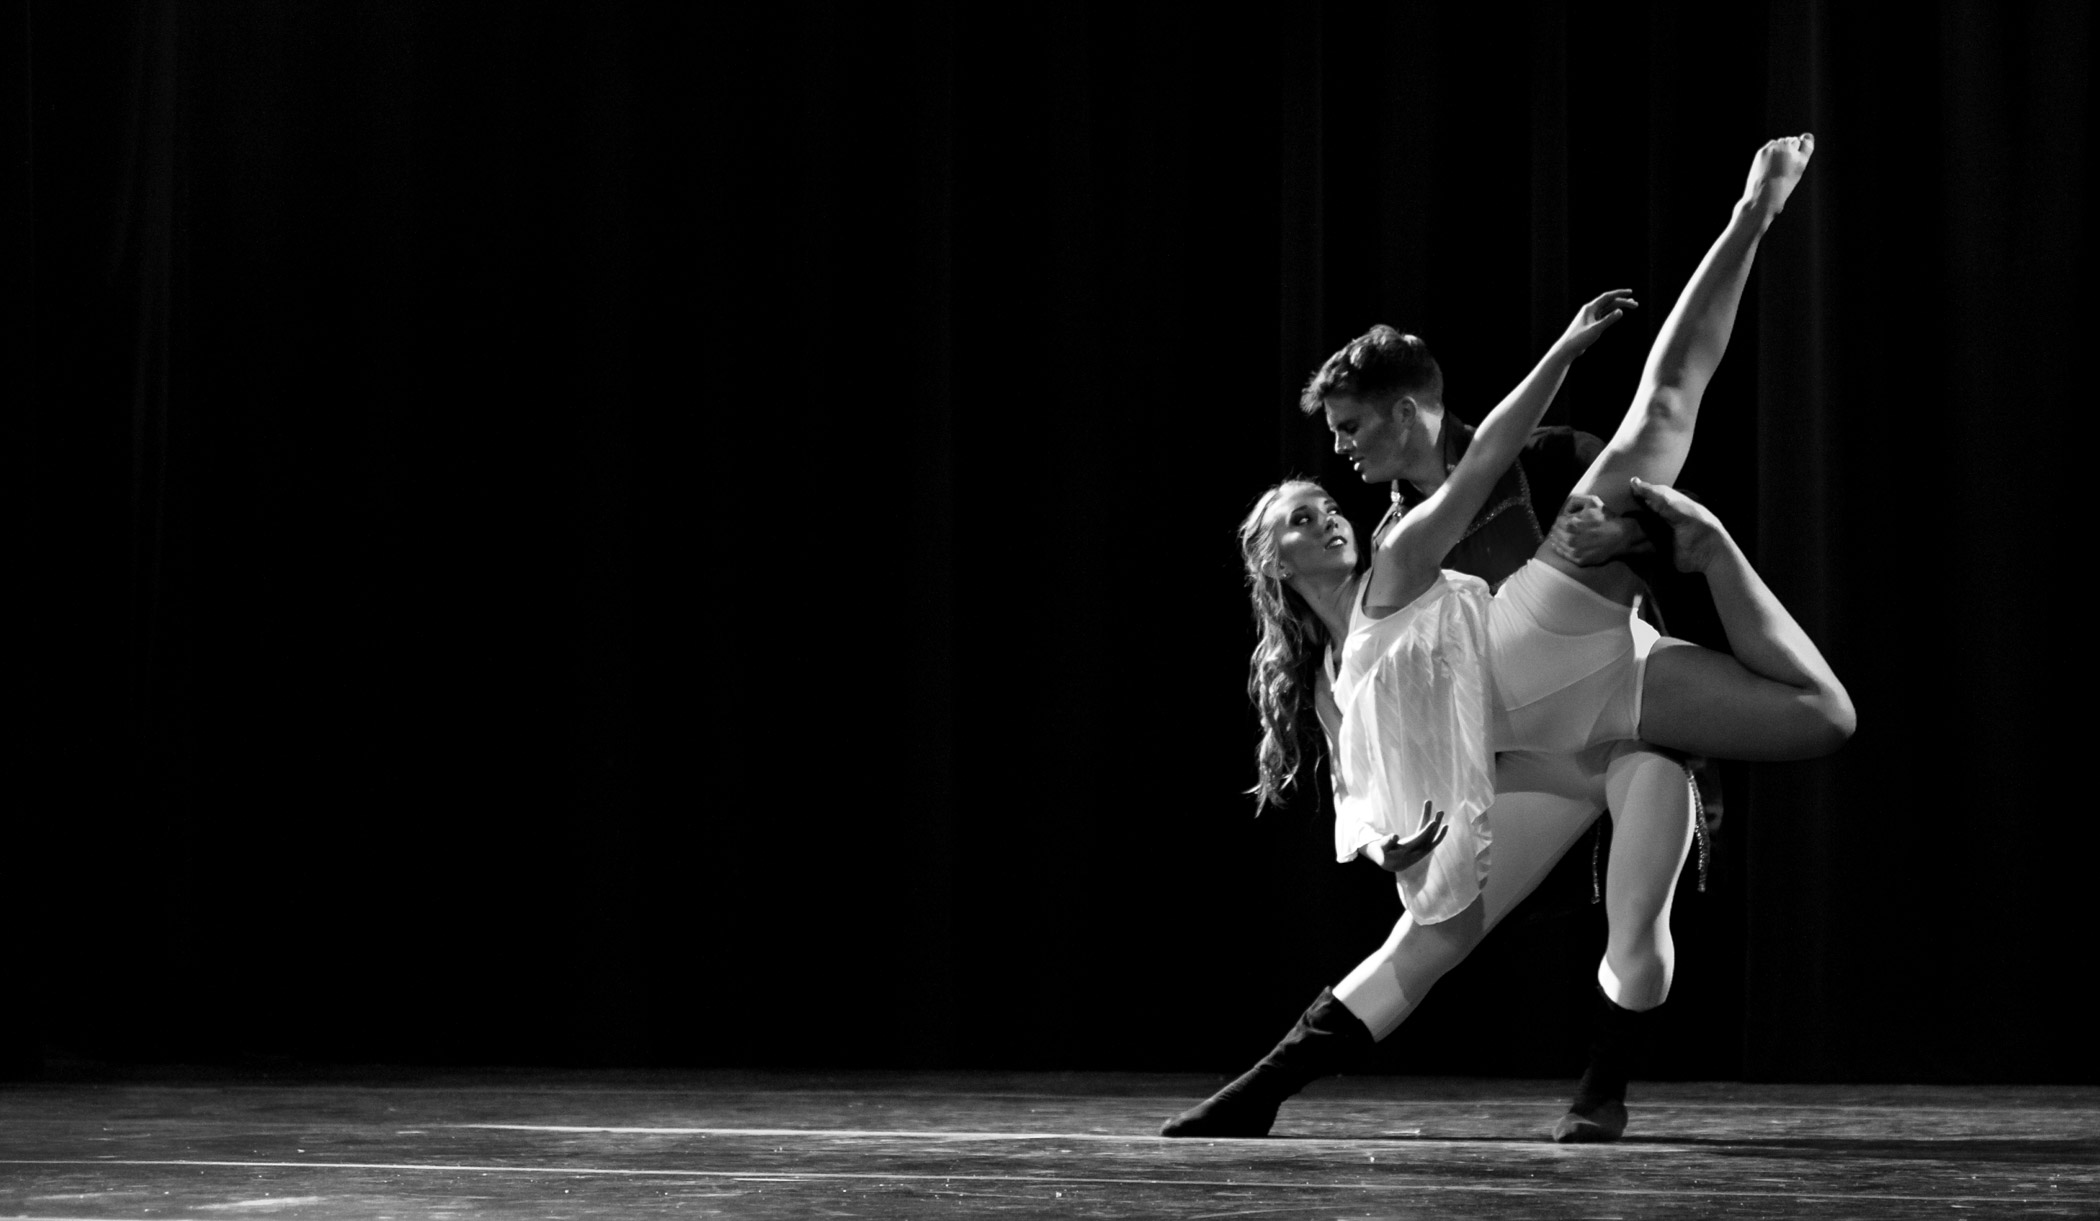 CT dance photography of professional dancers